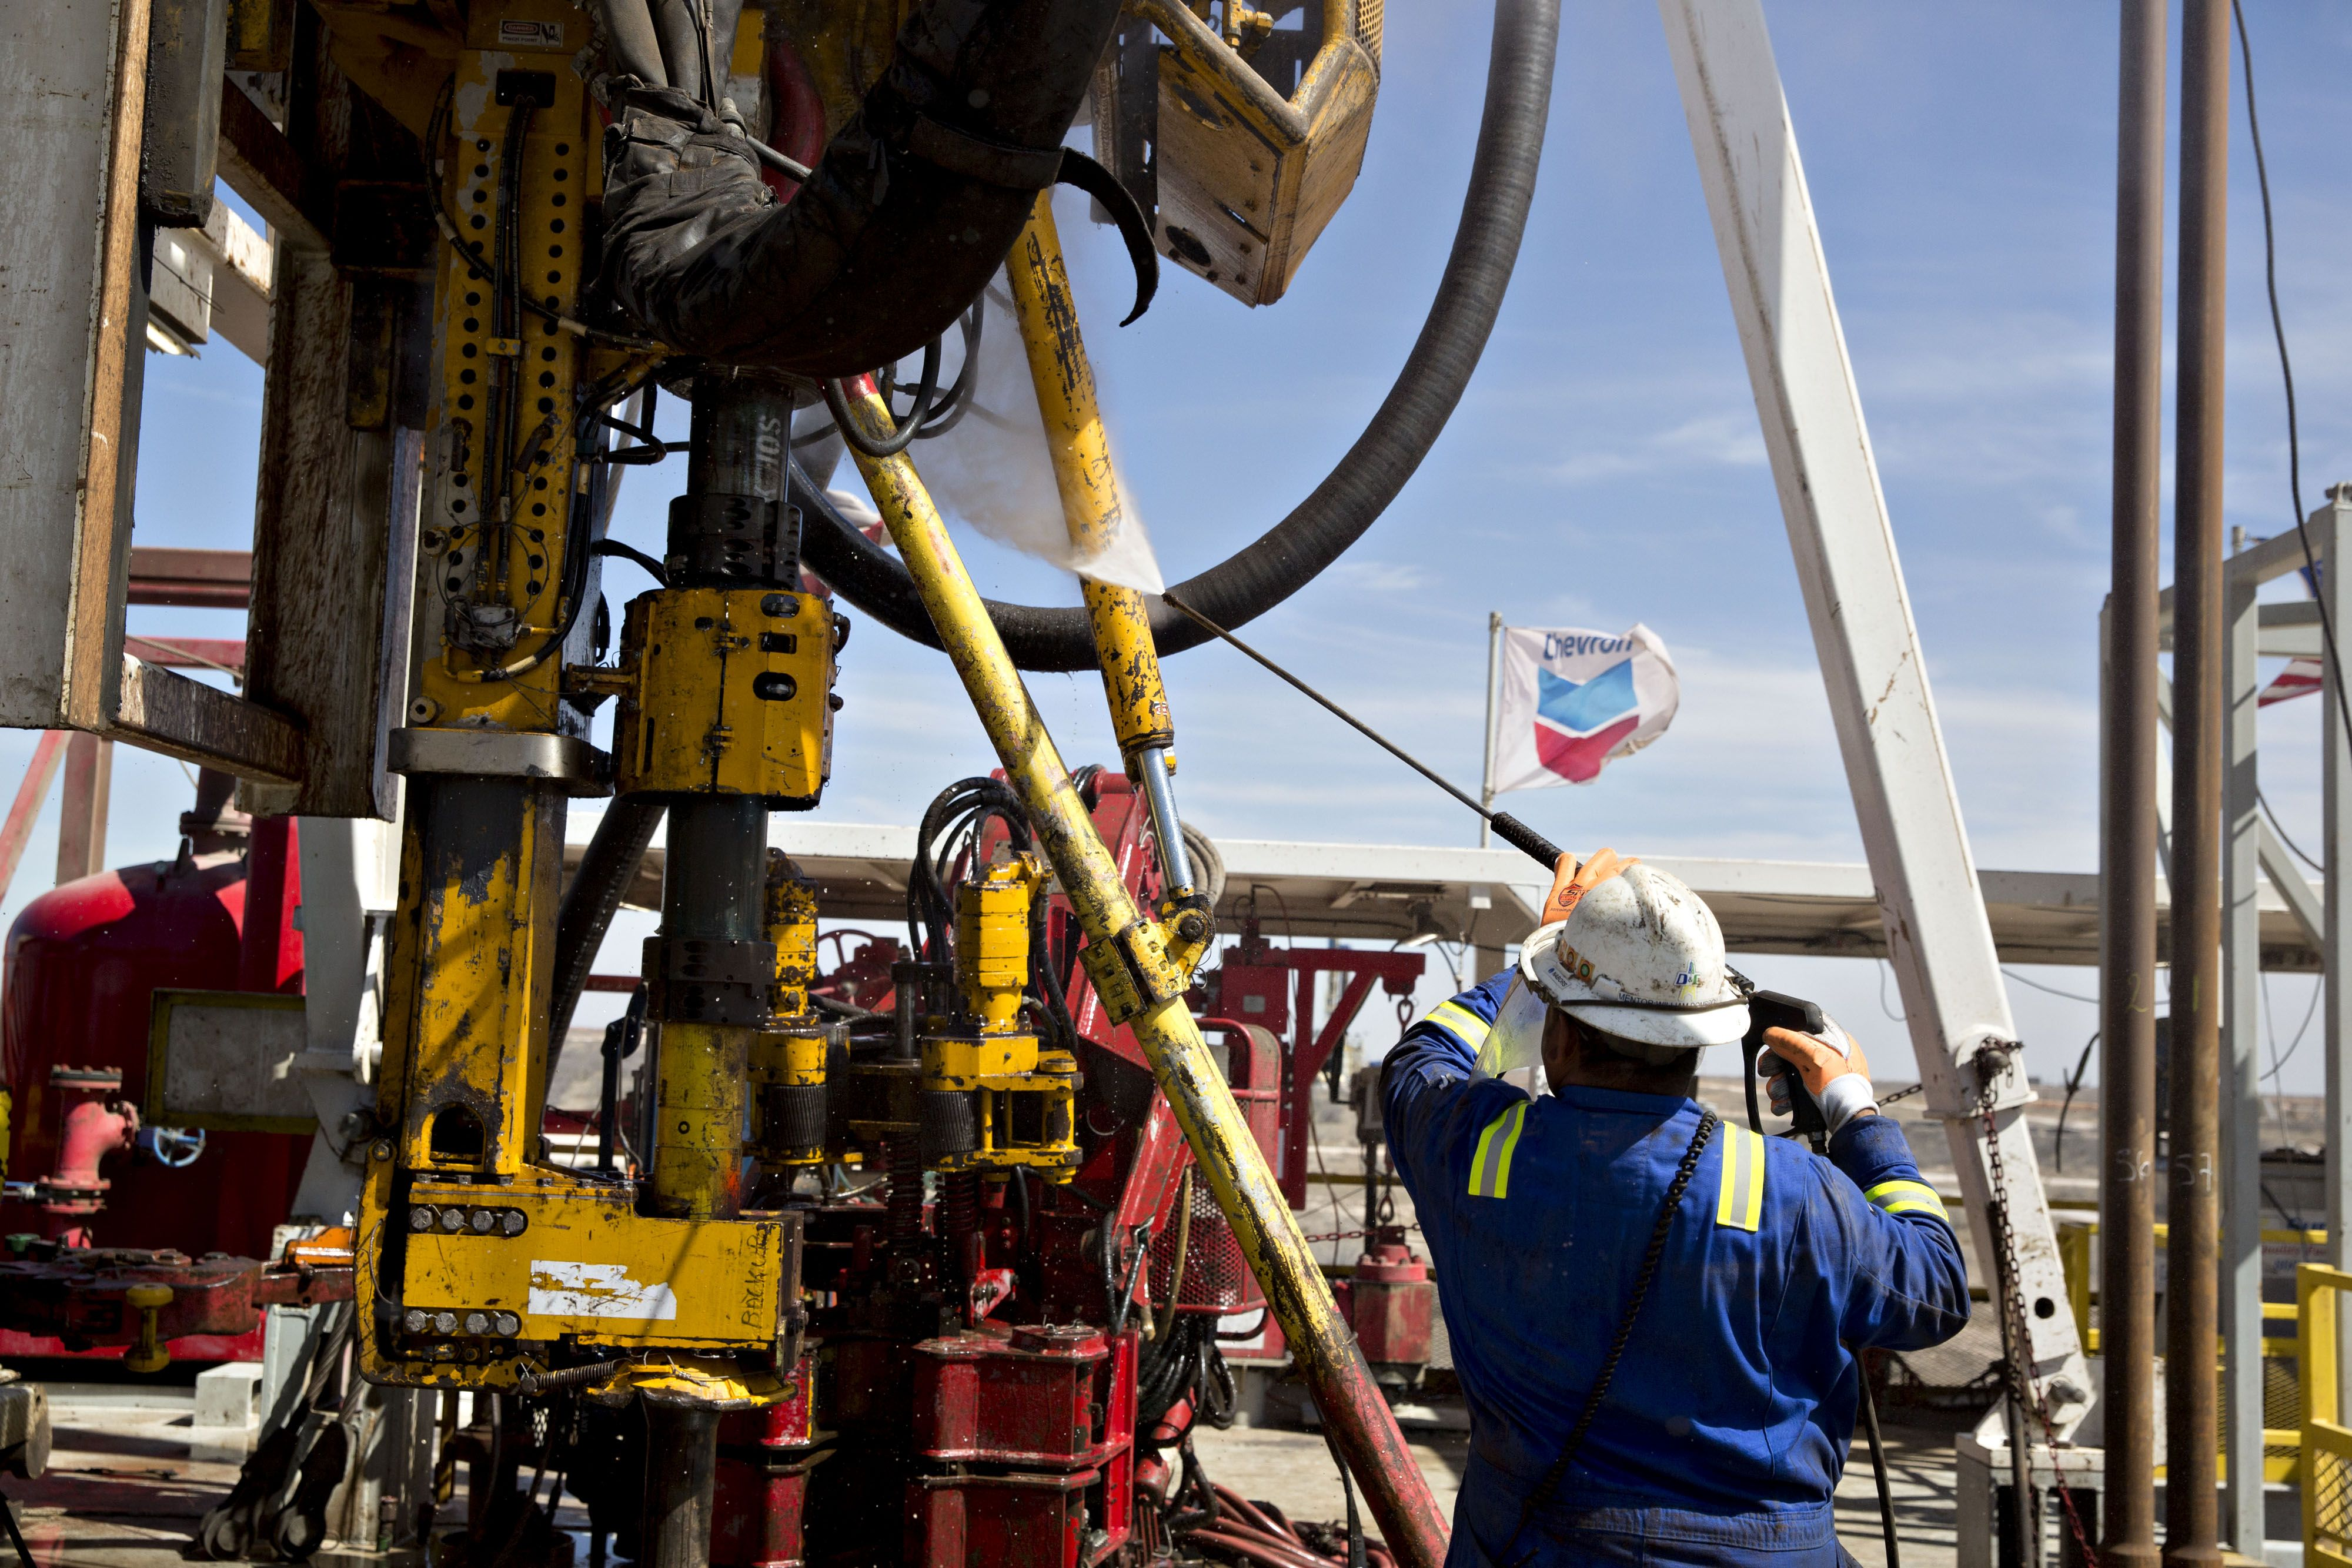 A roughneck with Nabors Industries Ltd. uses a power washer to clean the drilling floor of a Nabors rig drilling for Chevron Corp. in the Permian Basin near Midland, Texas, U.S., on Thursday, March 1, 2018. Photographer: Daniel Acker/Bloomberg